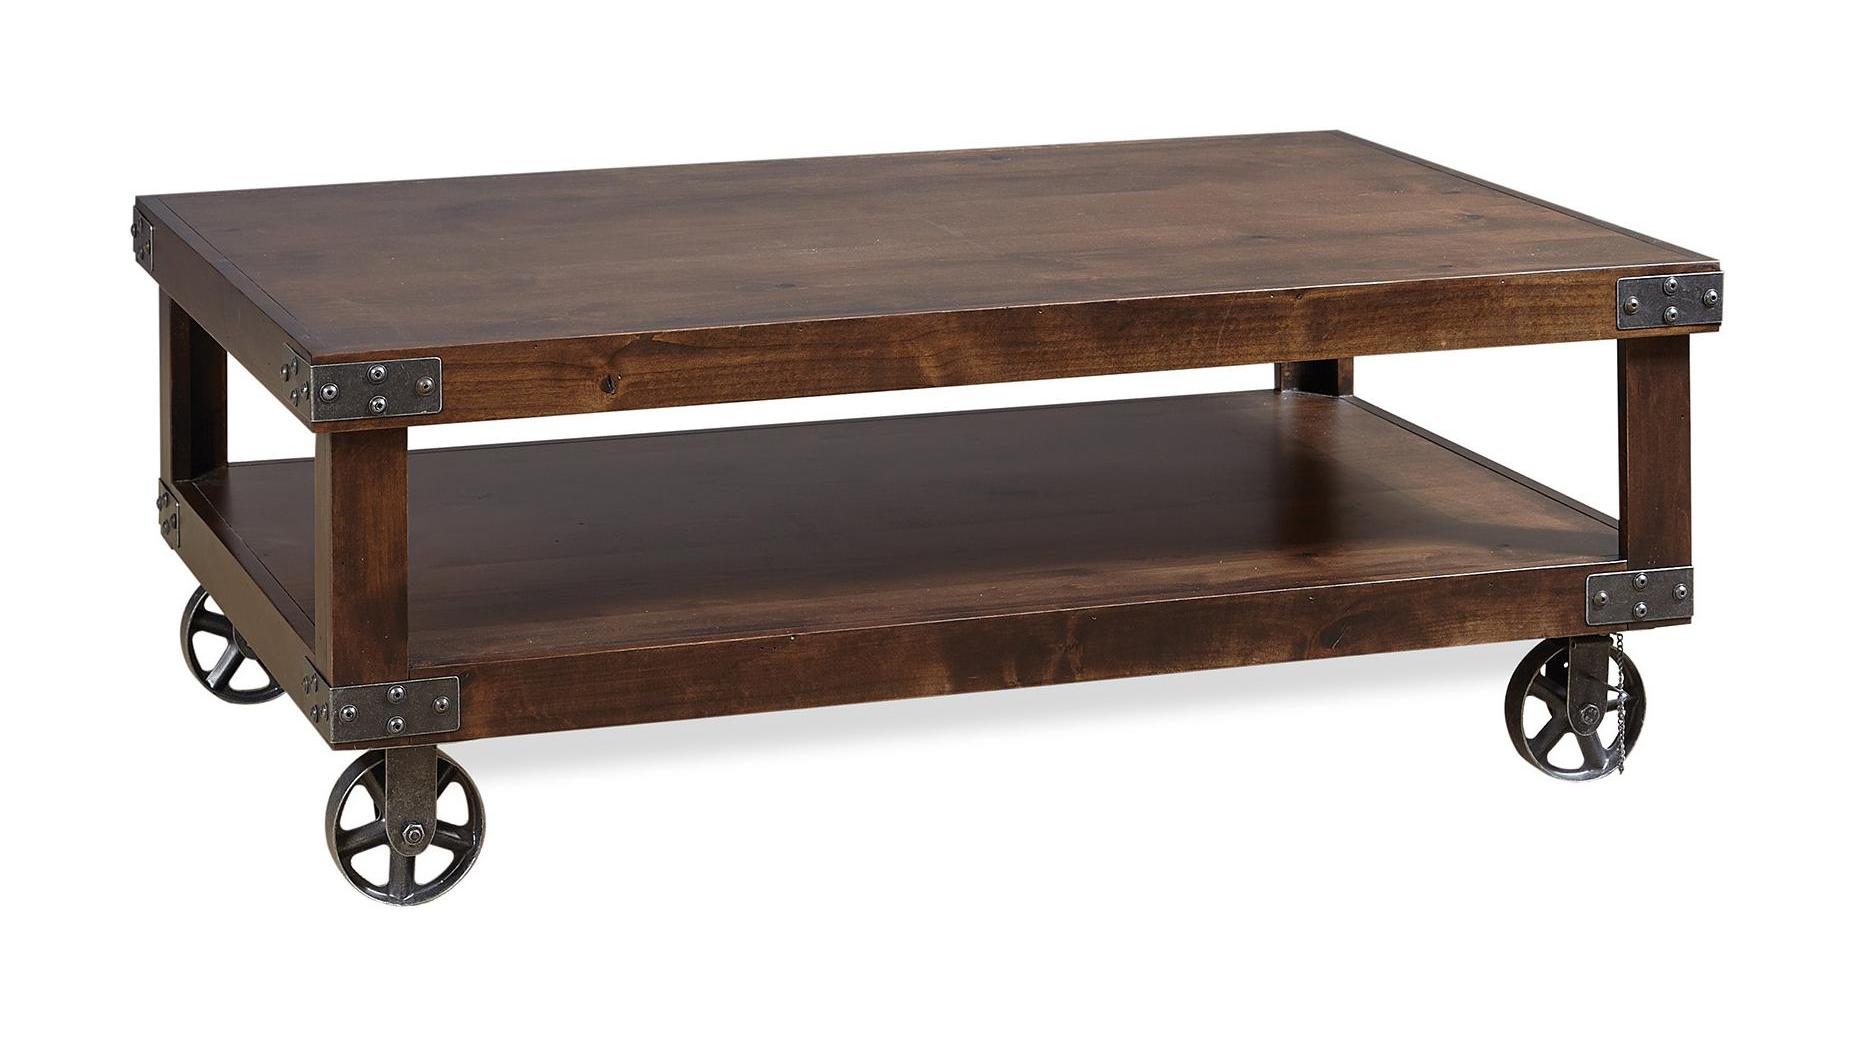 Industrial Cocktail Table in the Tobacco finish